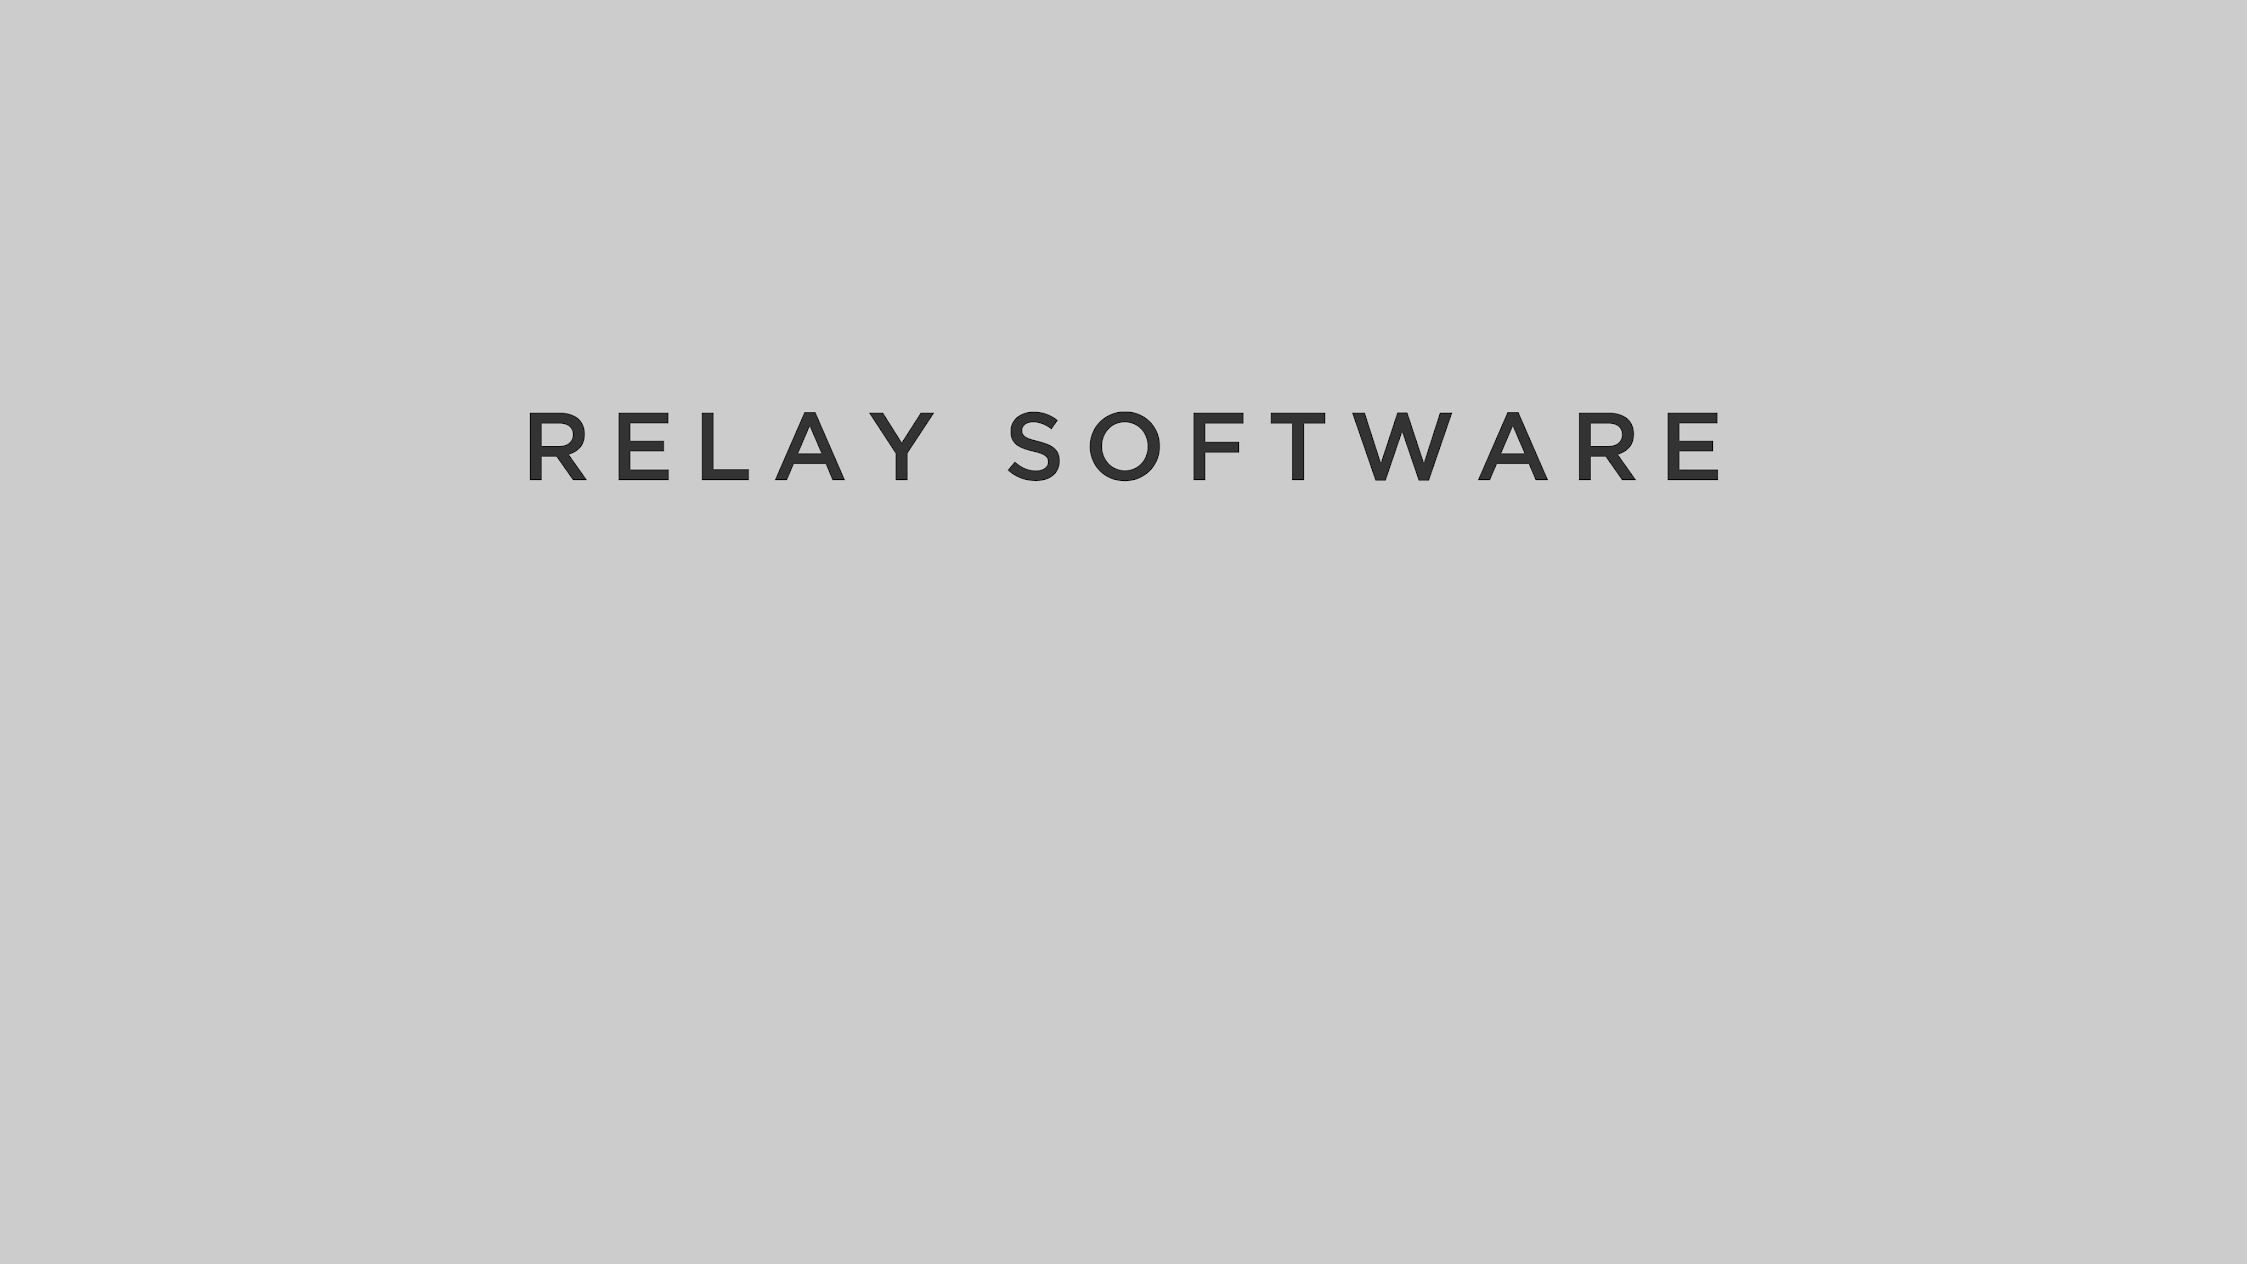 Relay Software